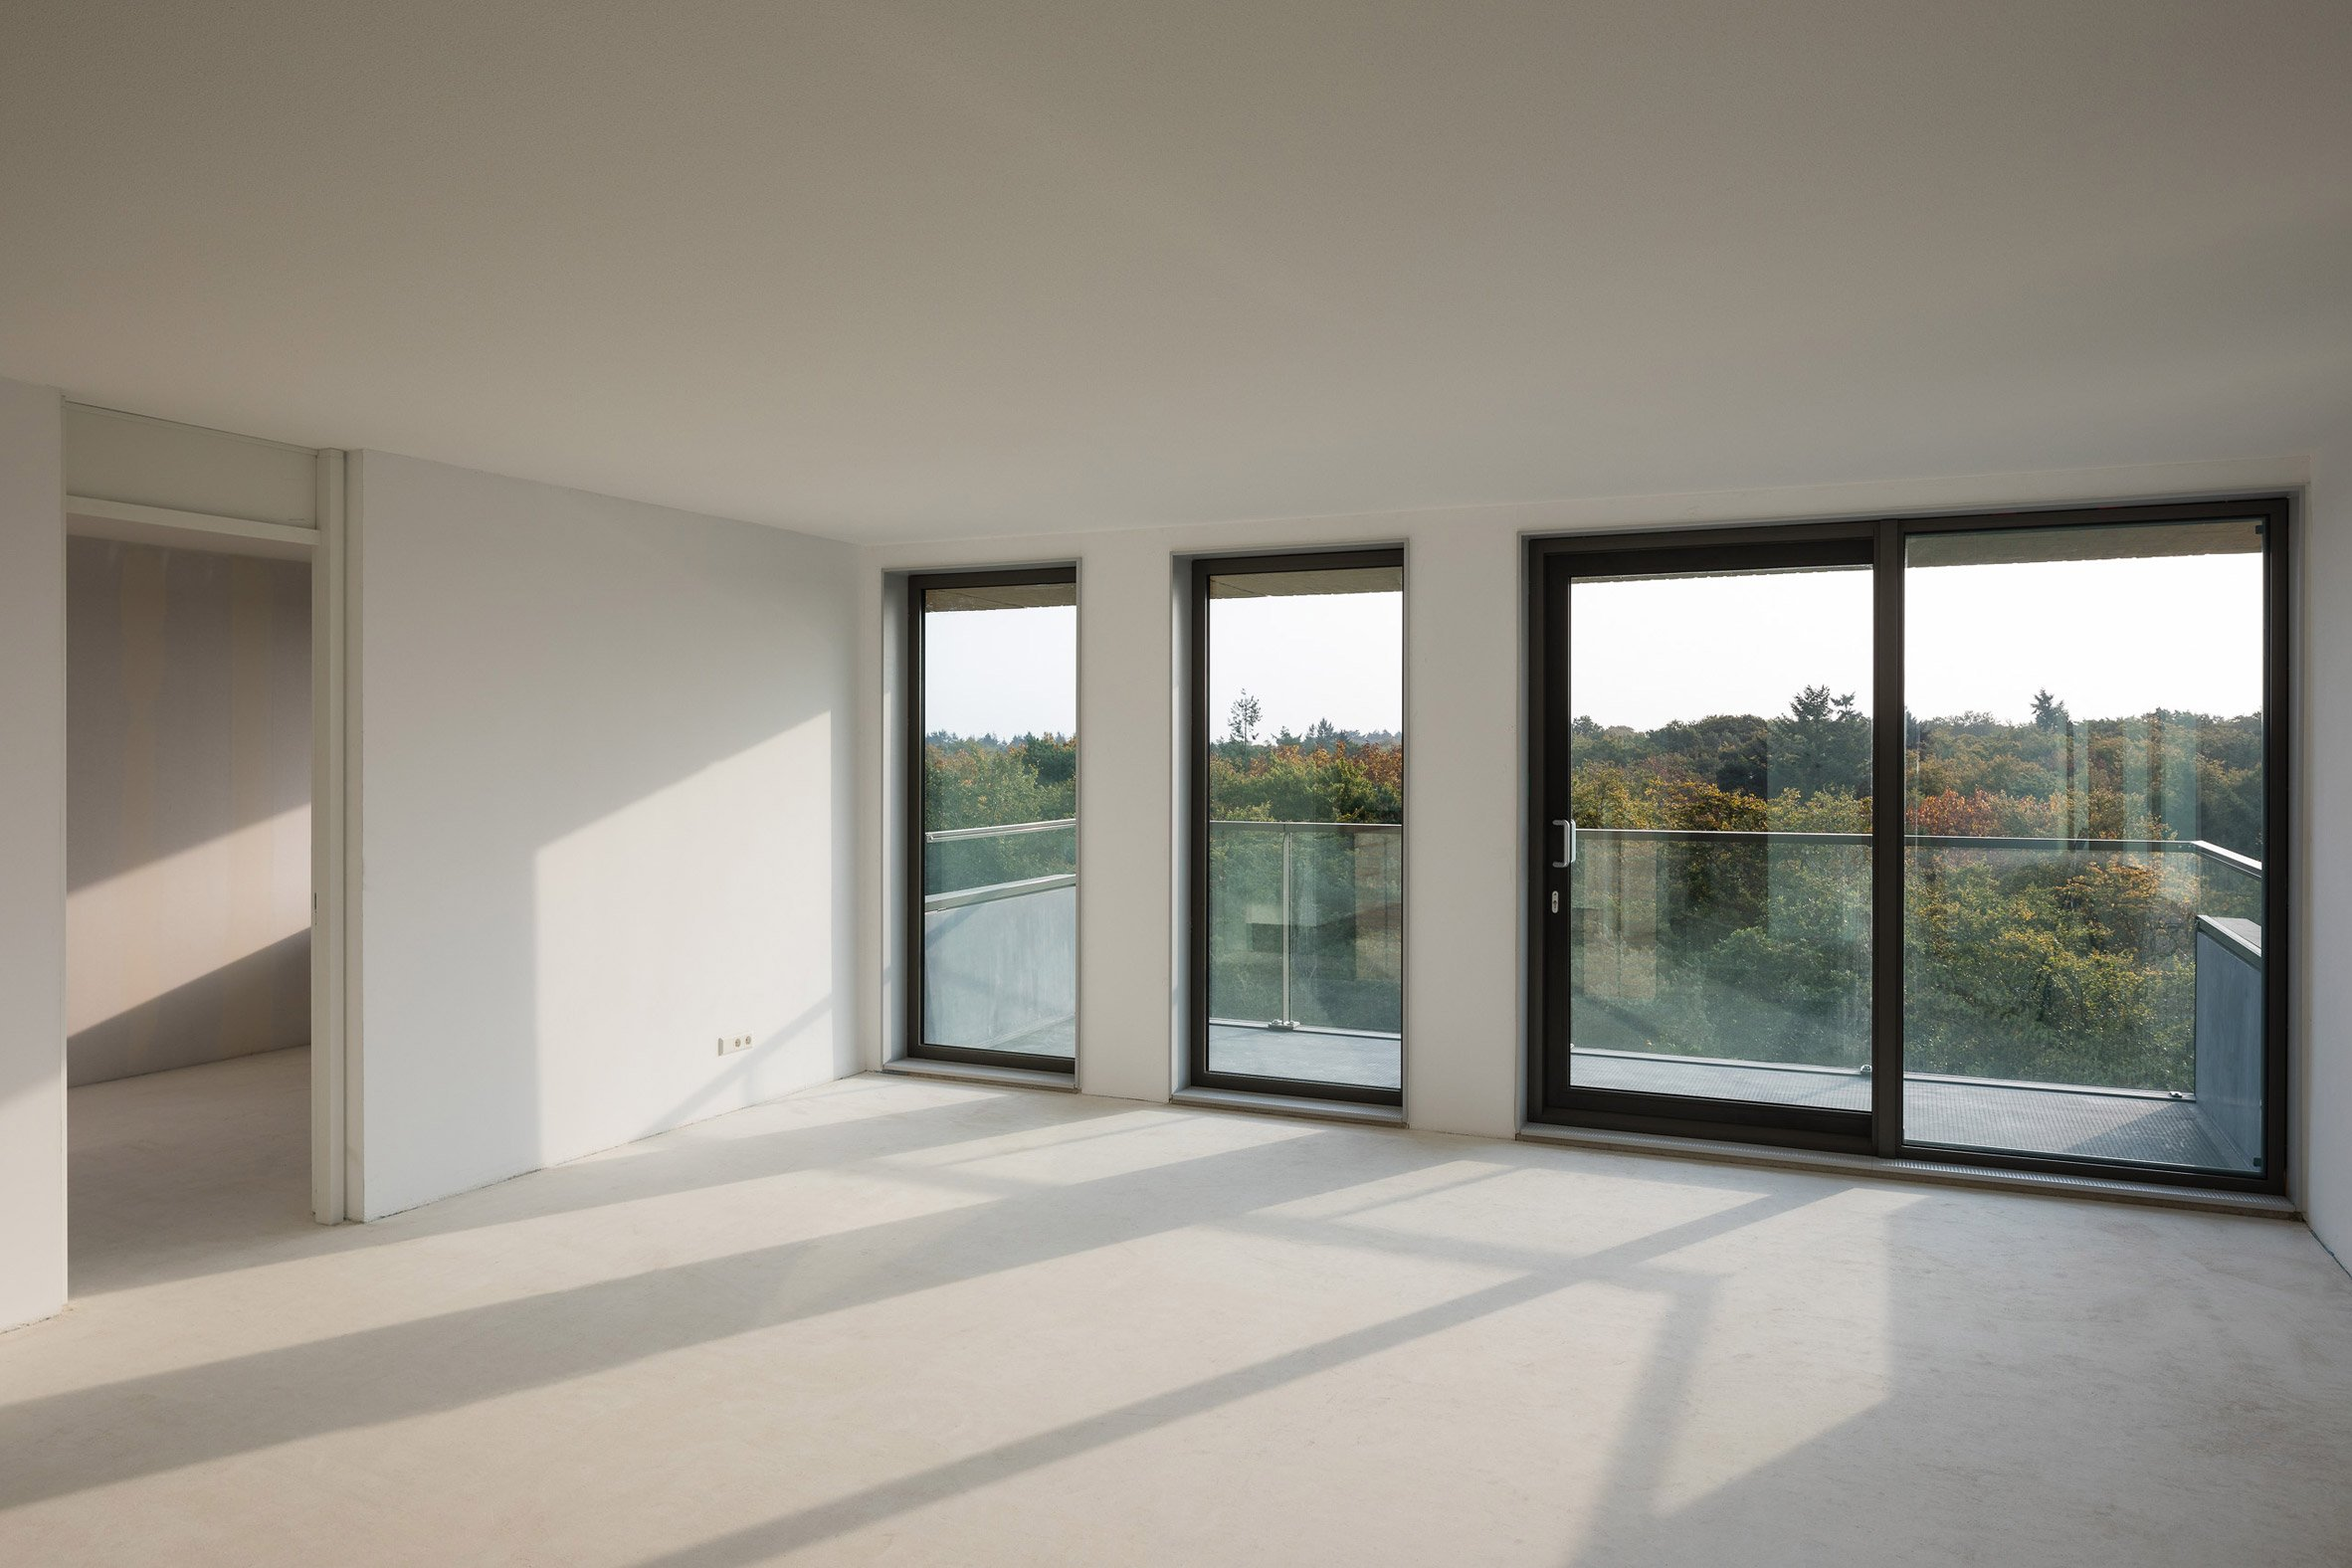 Interiors of Belvedere tower in the Netherlands by René van Zuuk Architekten